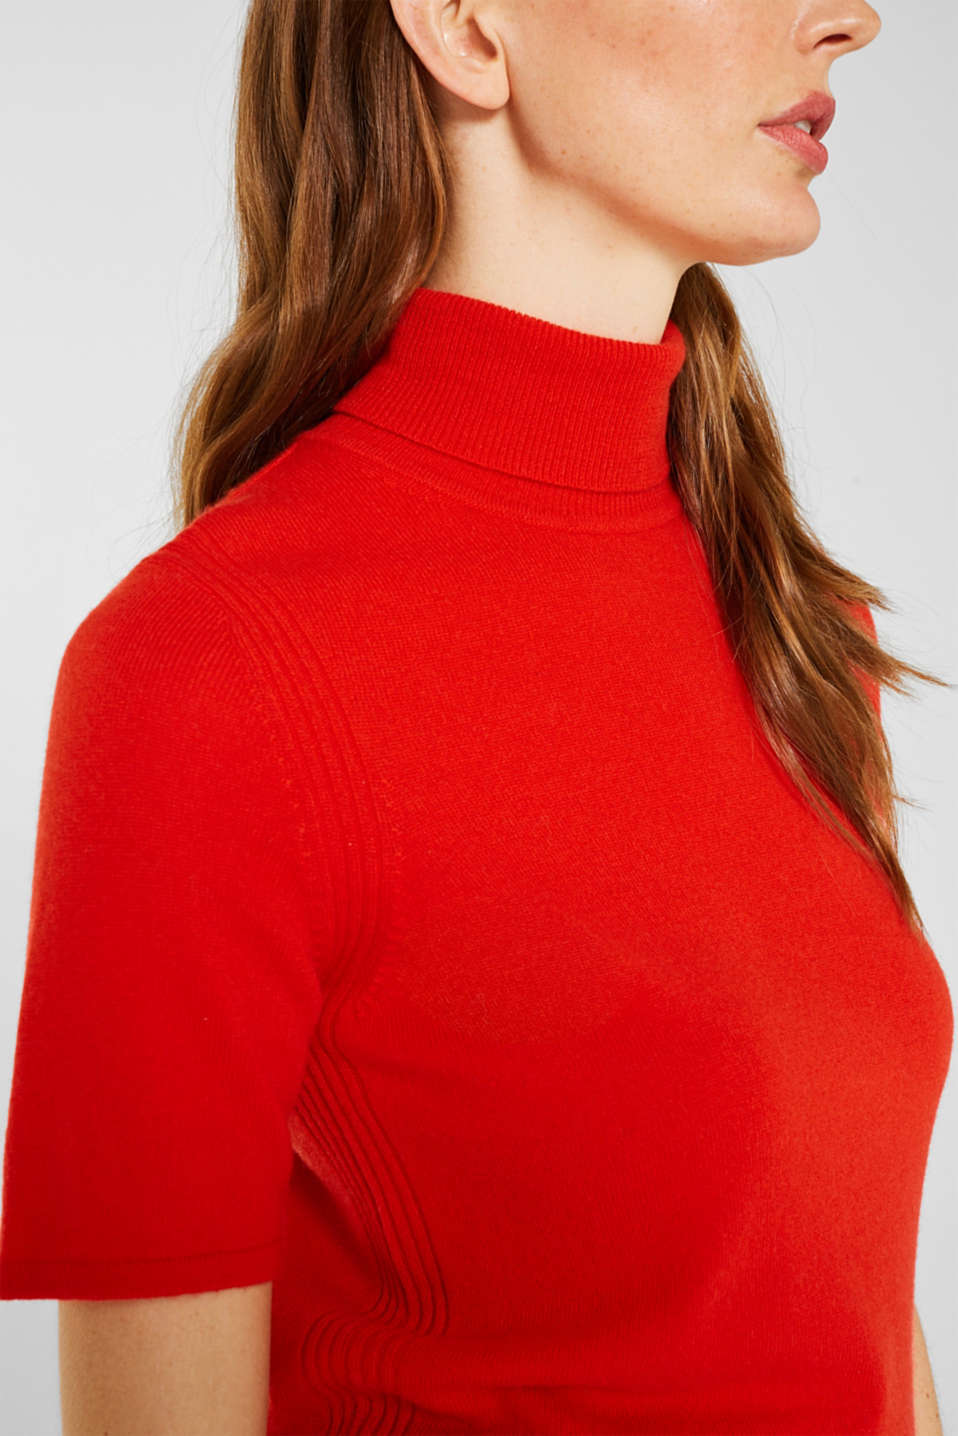 With cashmere: knitted top with a polo neck, ORANGE RED, detail image number 2